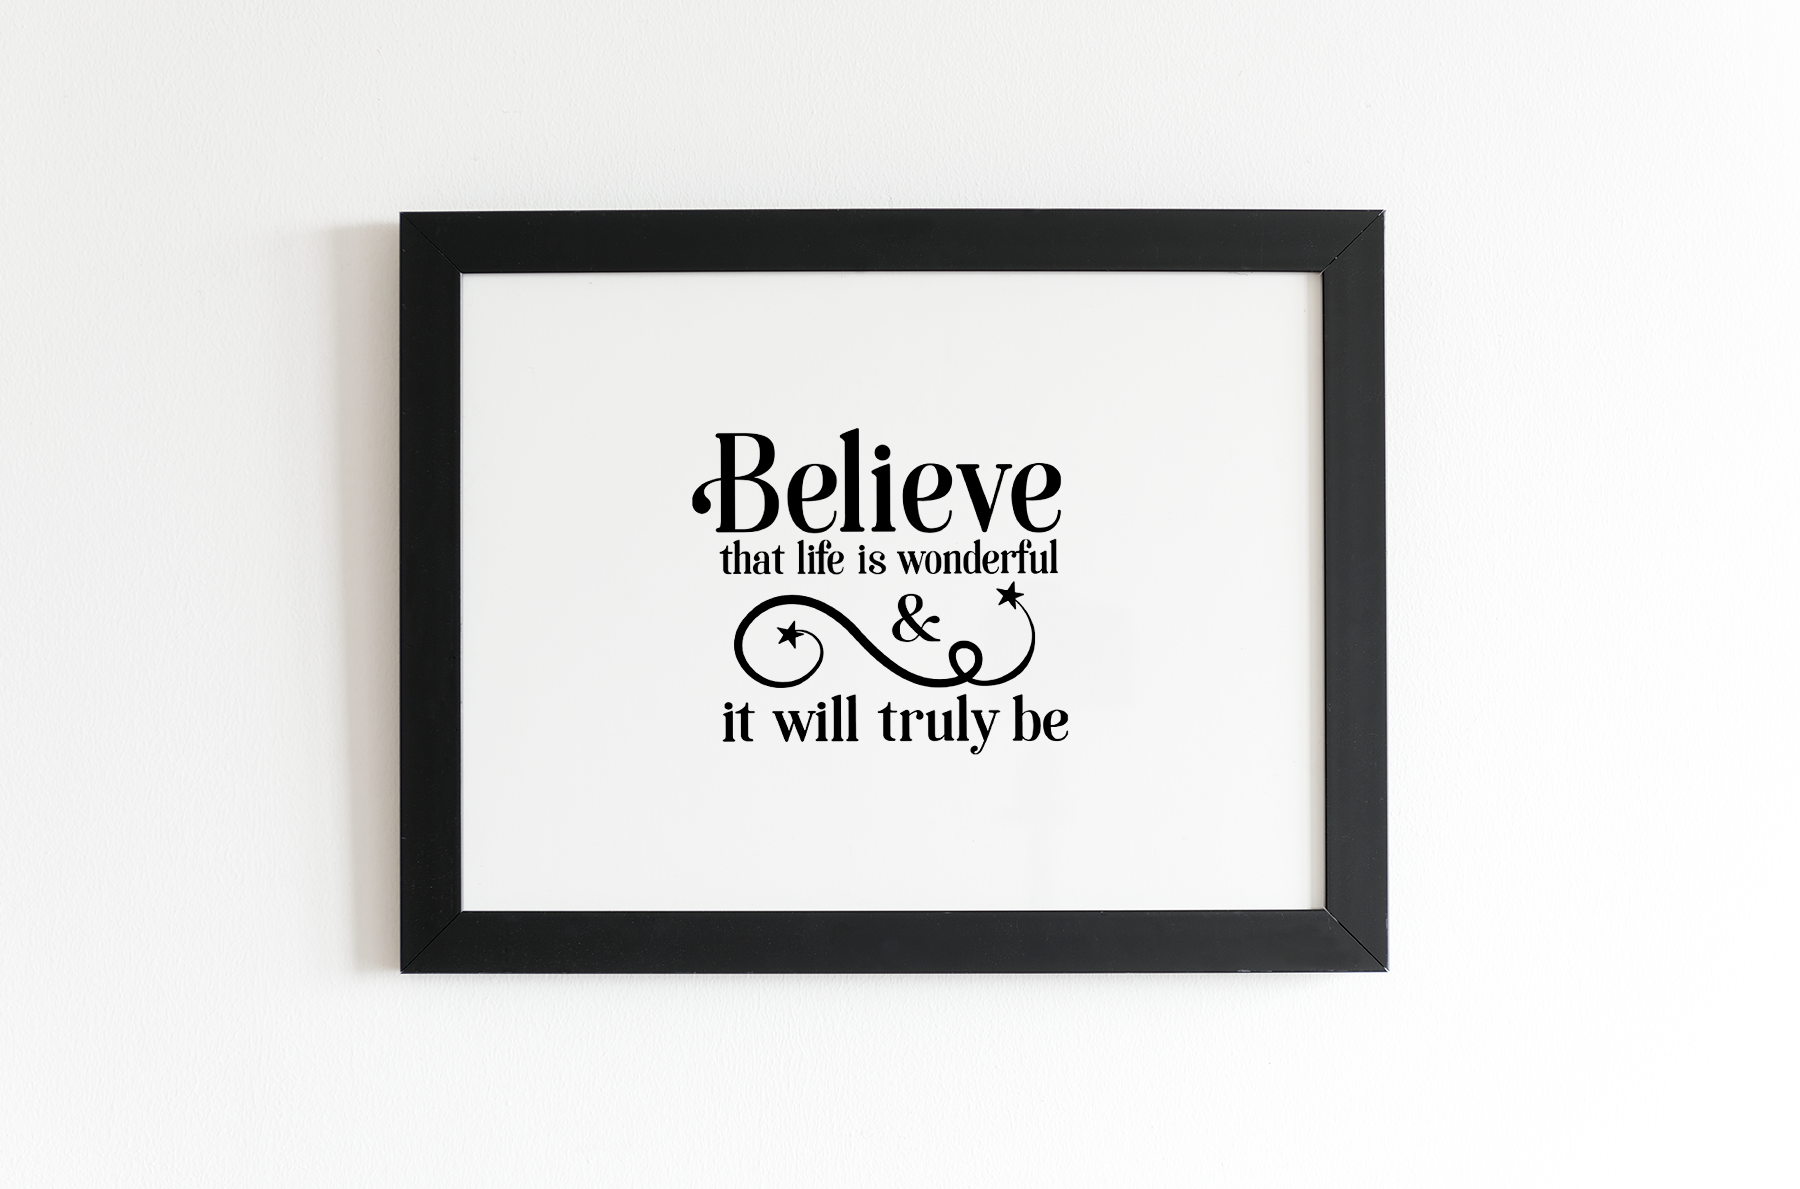 Believe that Life is Wonderful, An Inspirational Life SVG example image 4